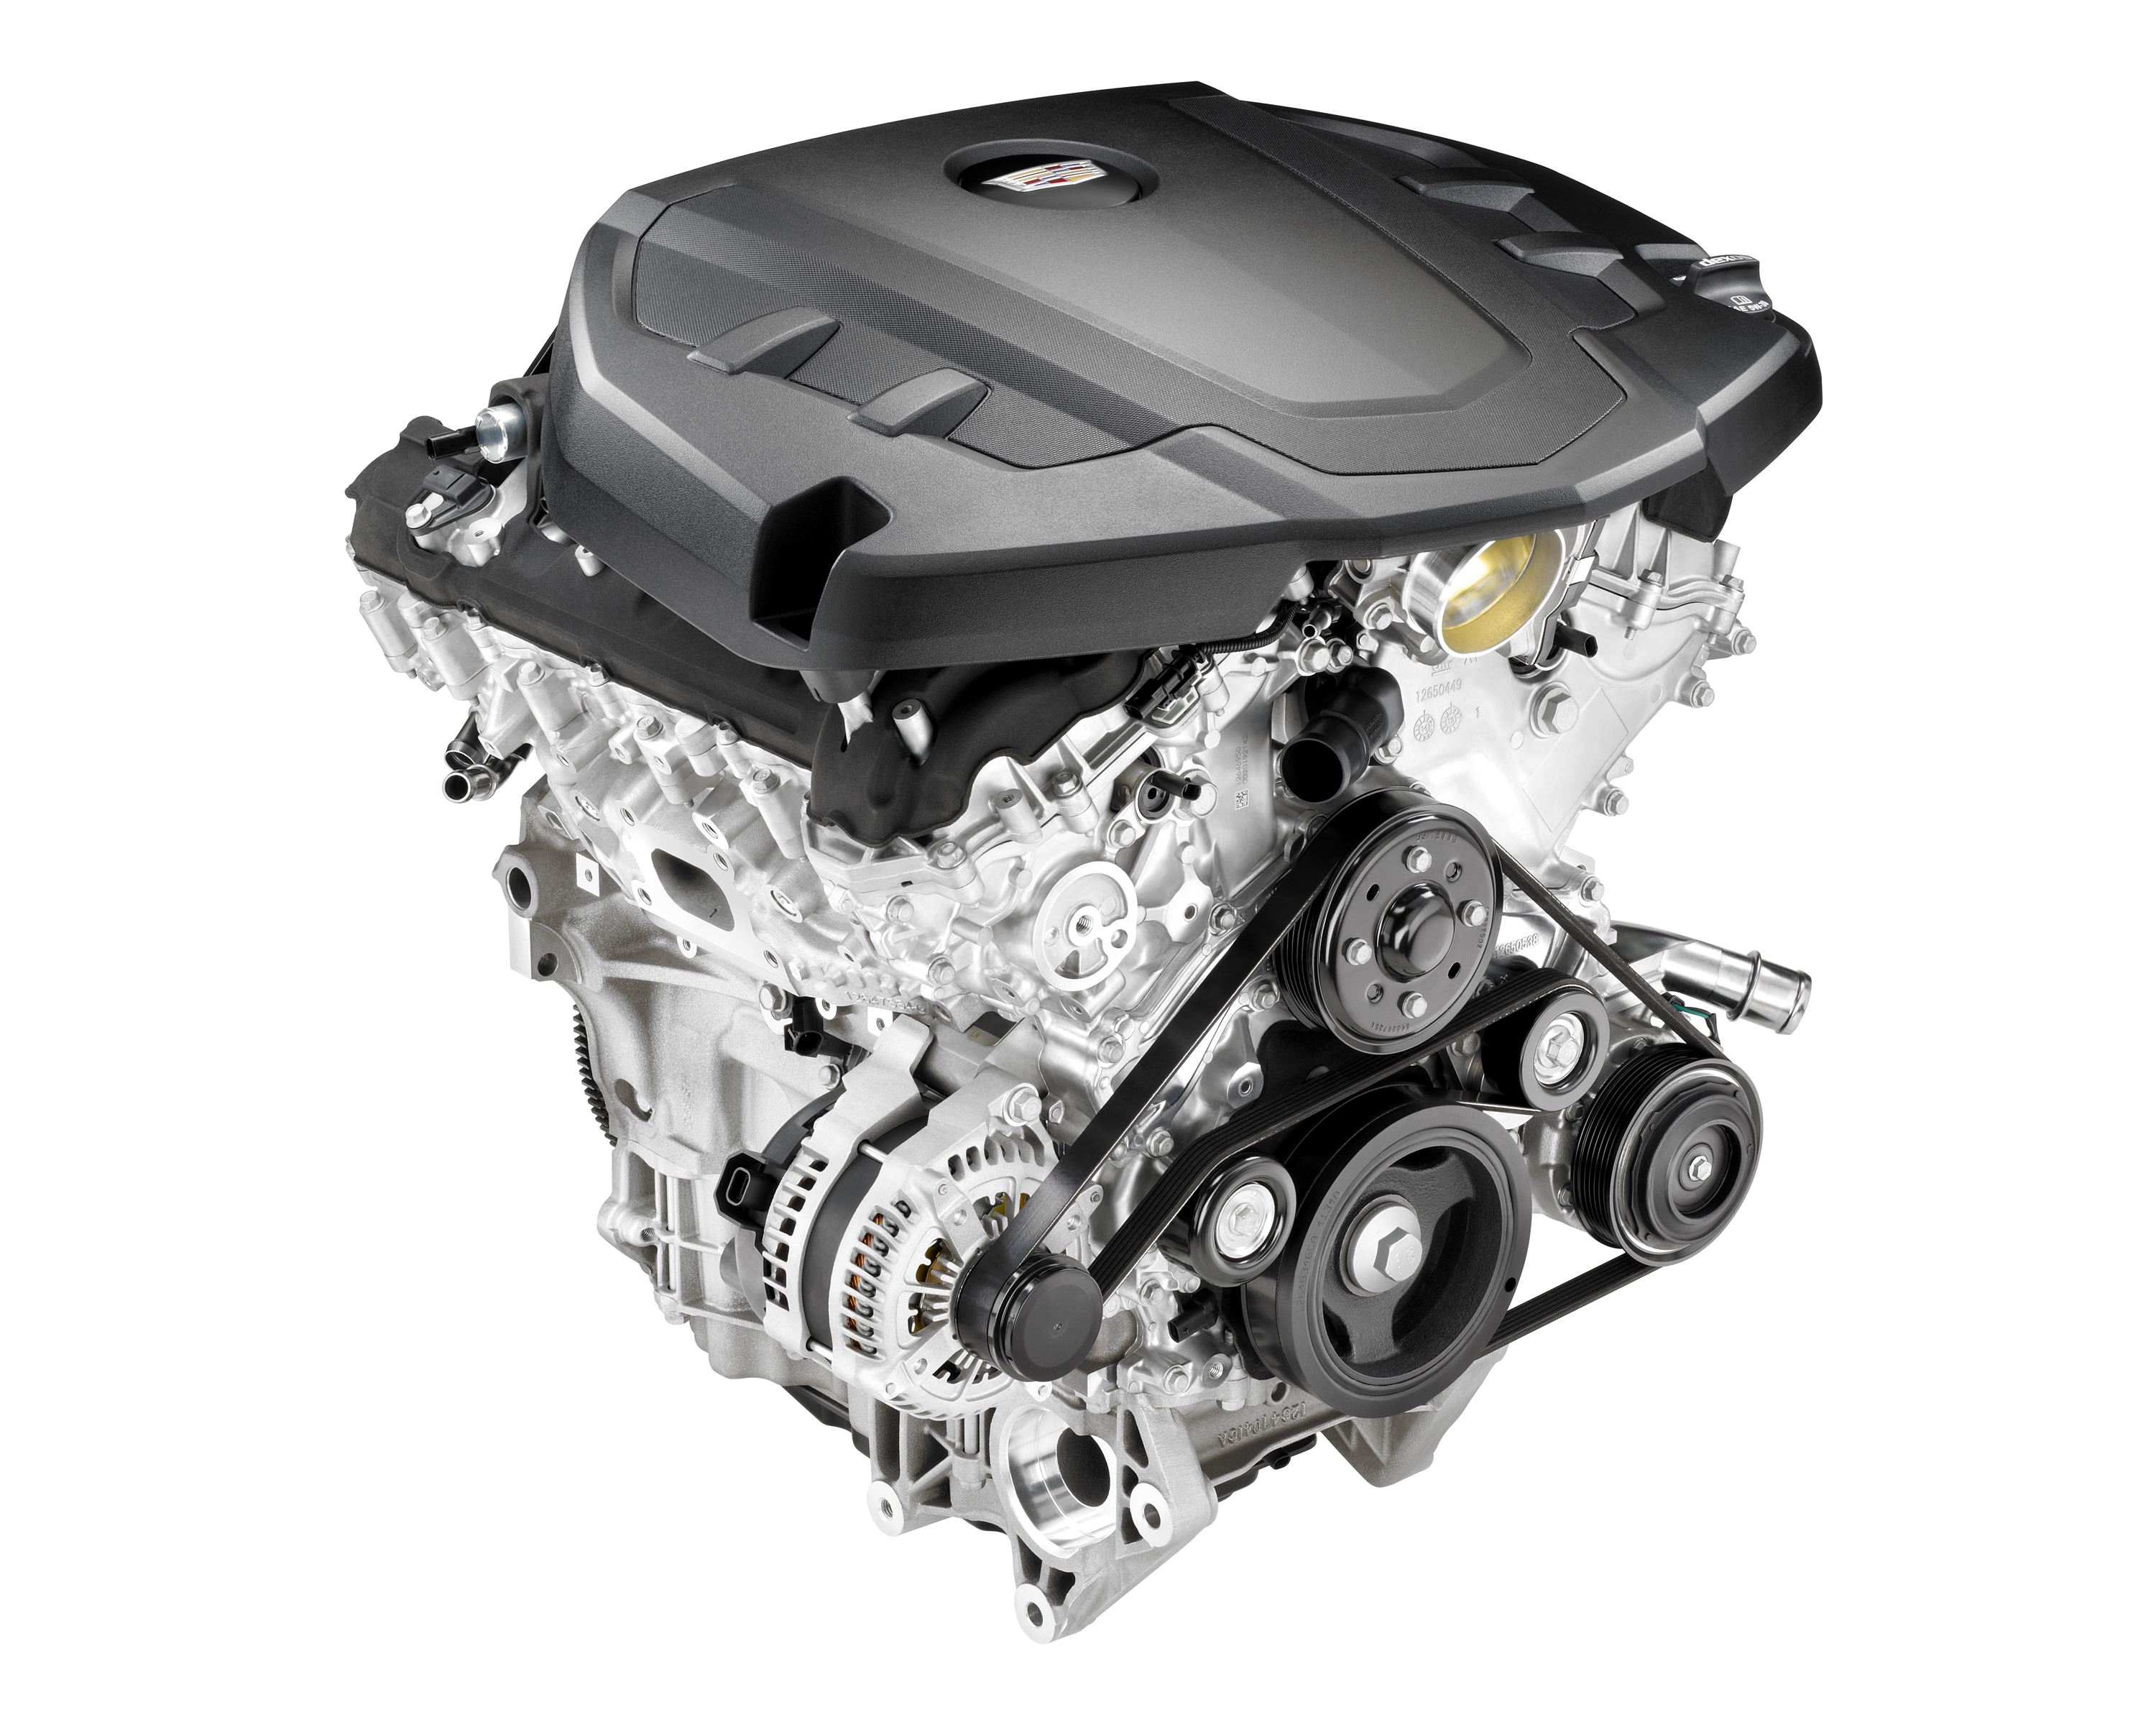 3 6L V6 Named One of Ward's 10 Best Engines